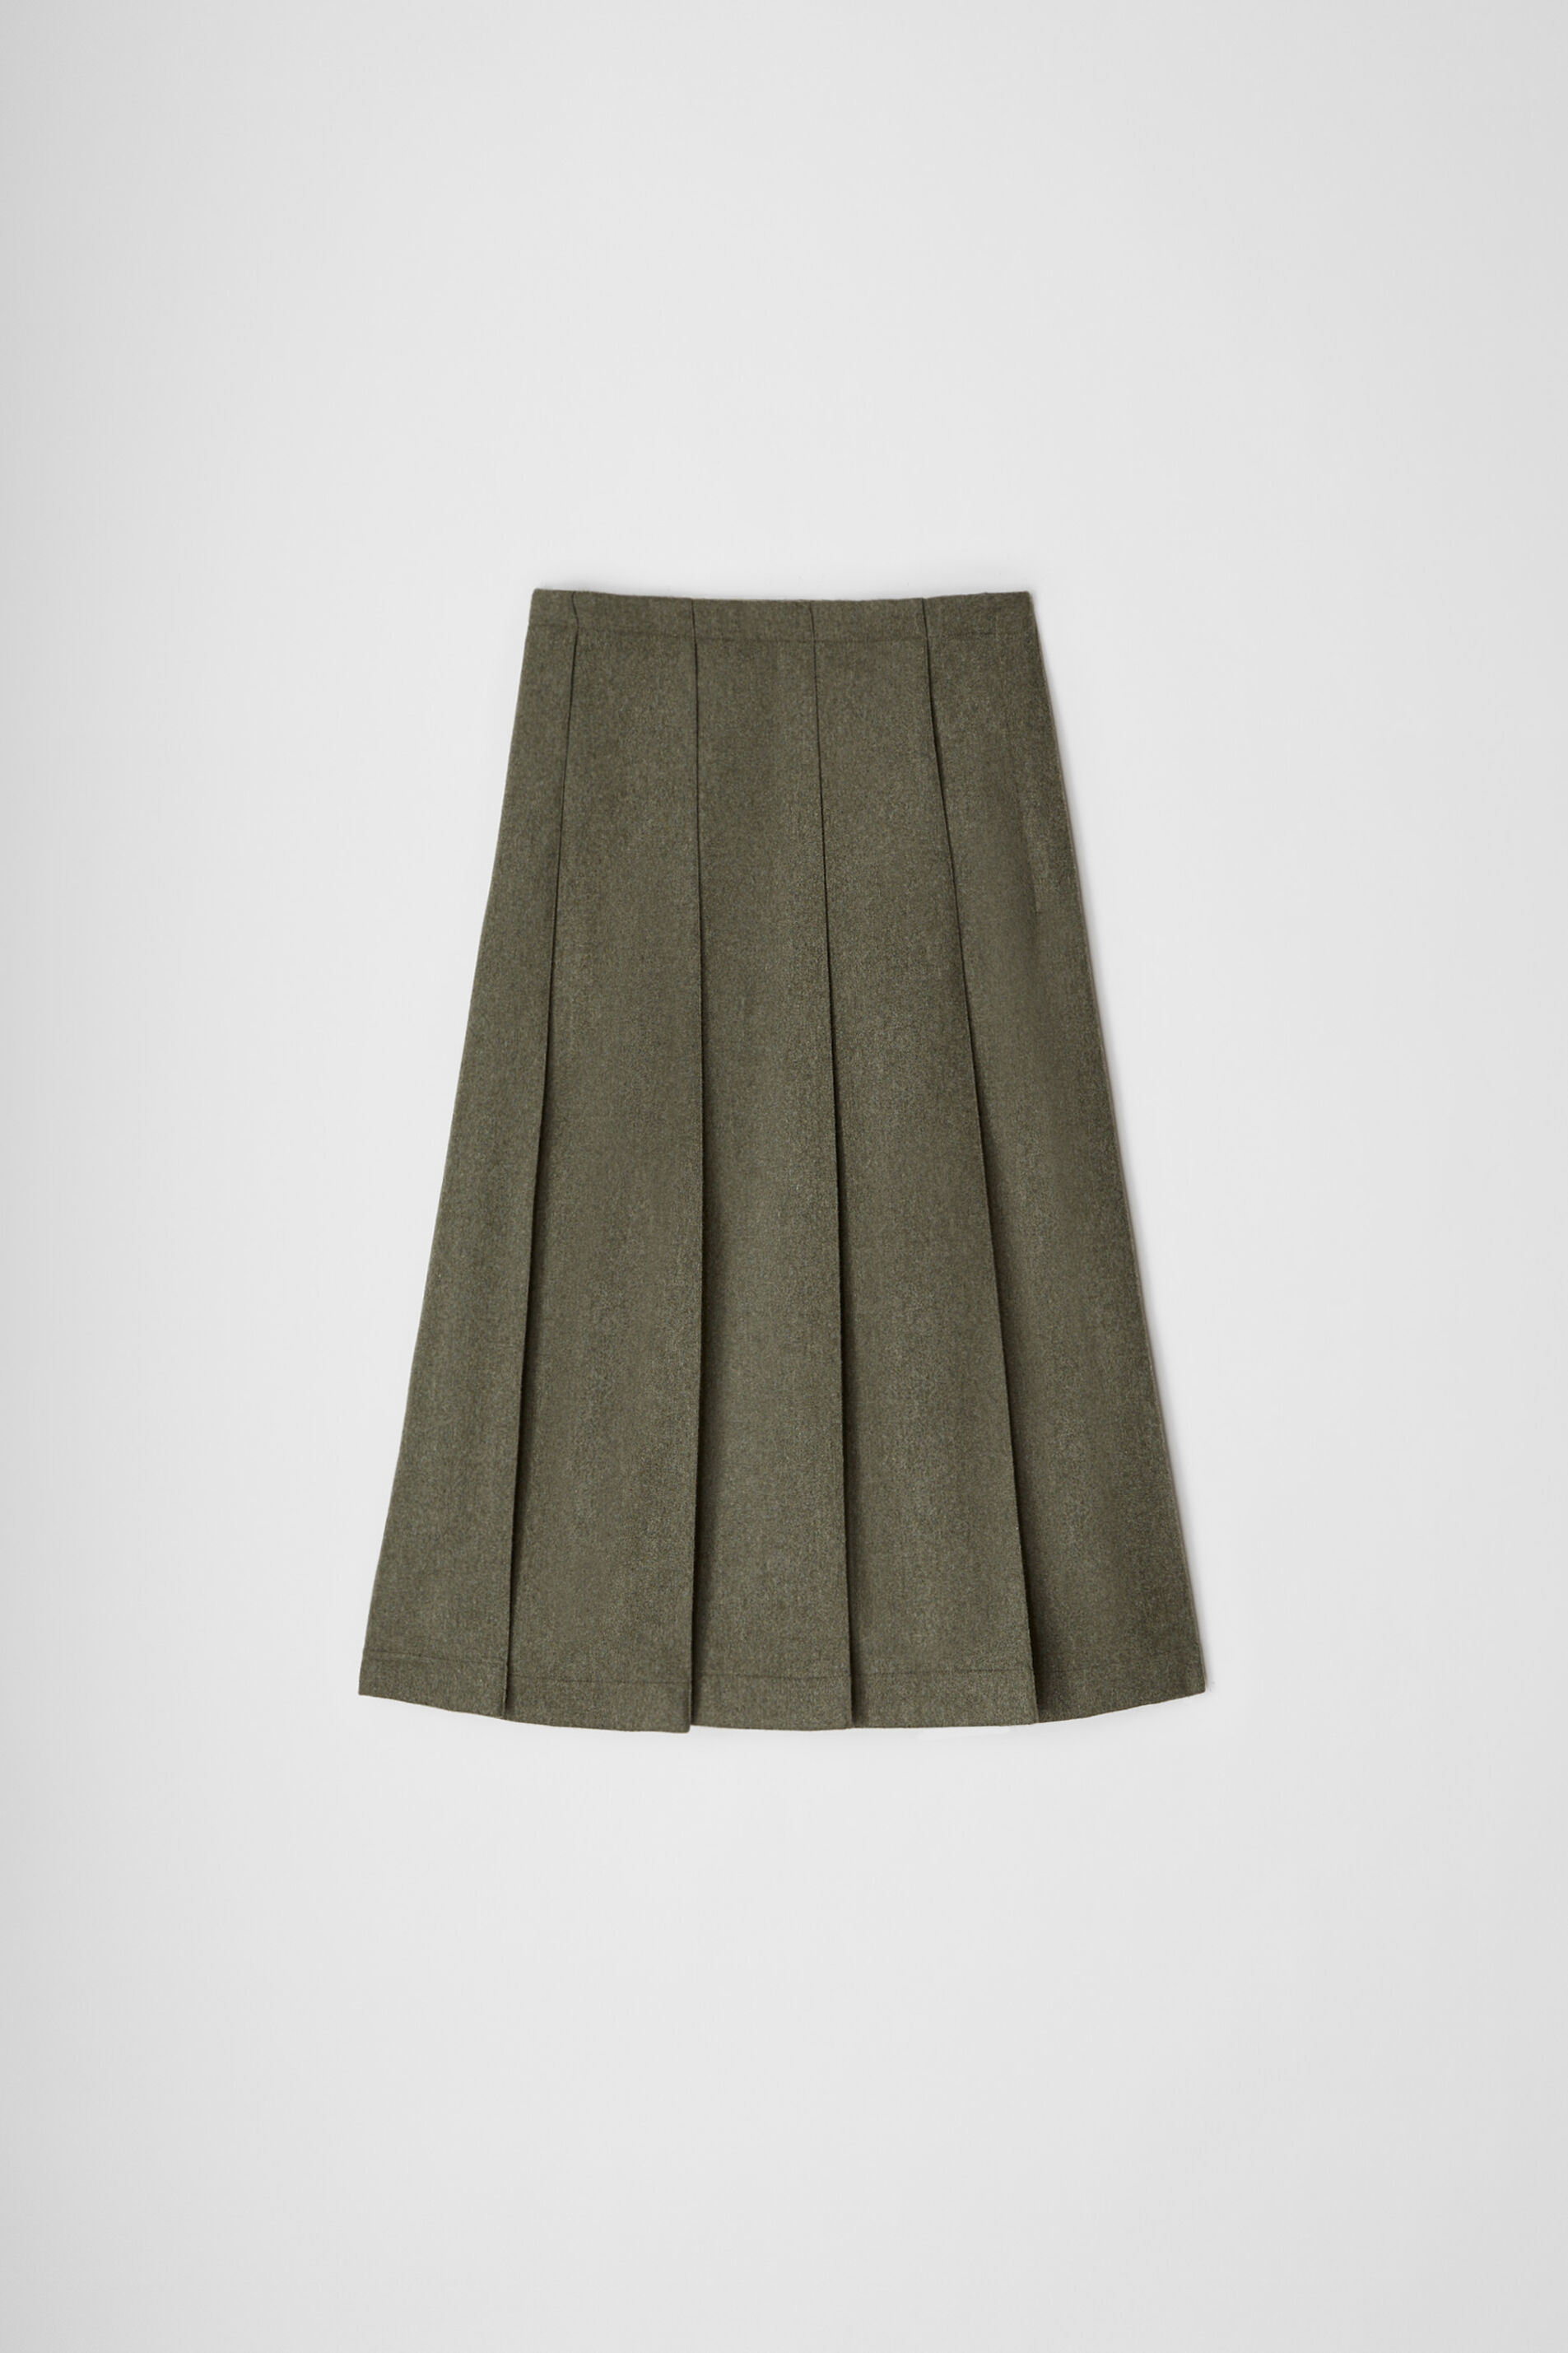 Skirt, dark green, large